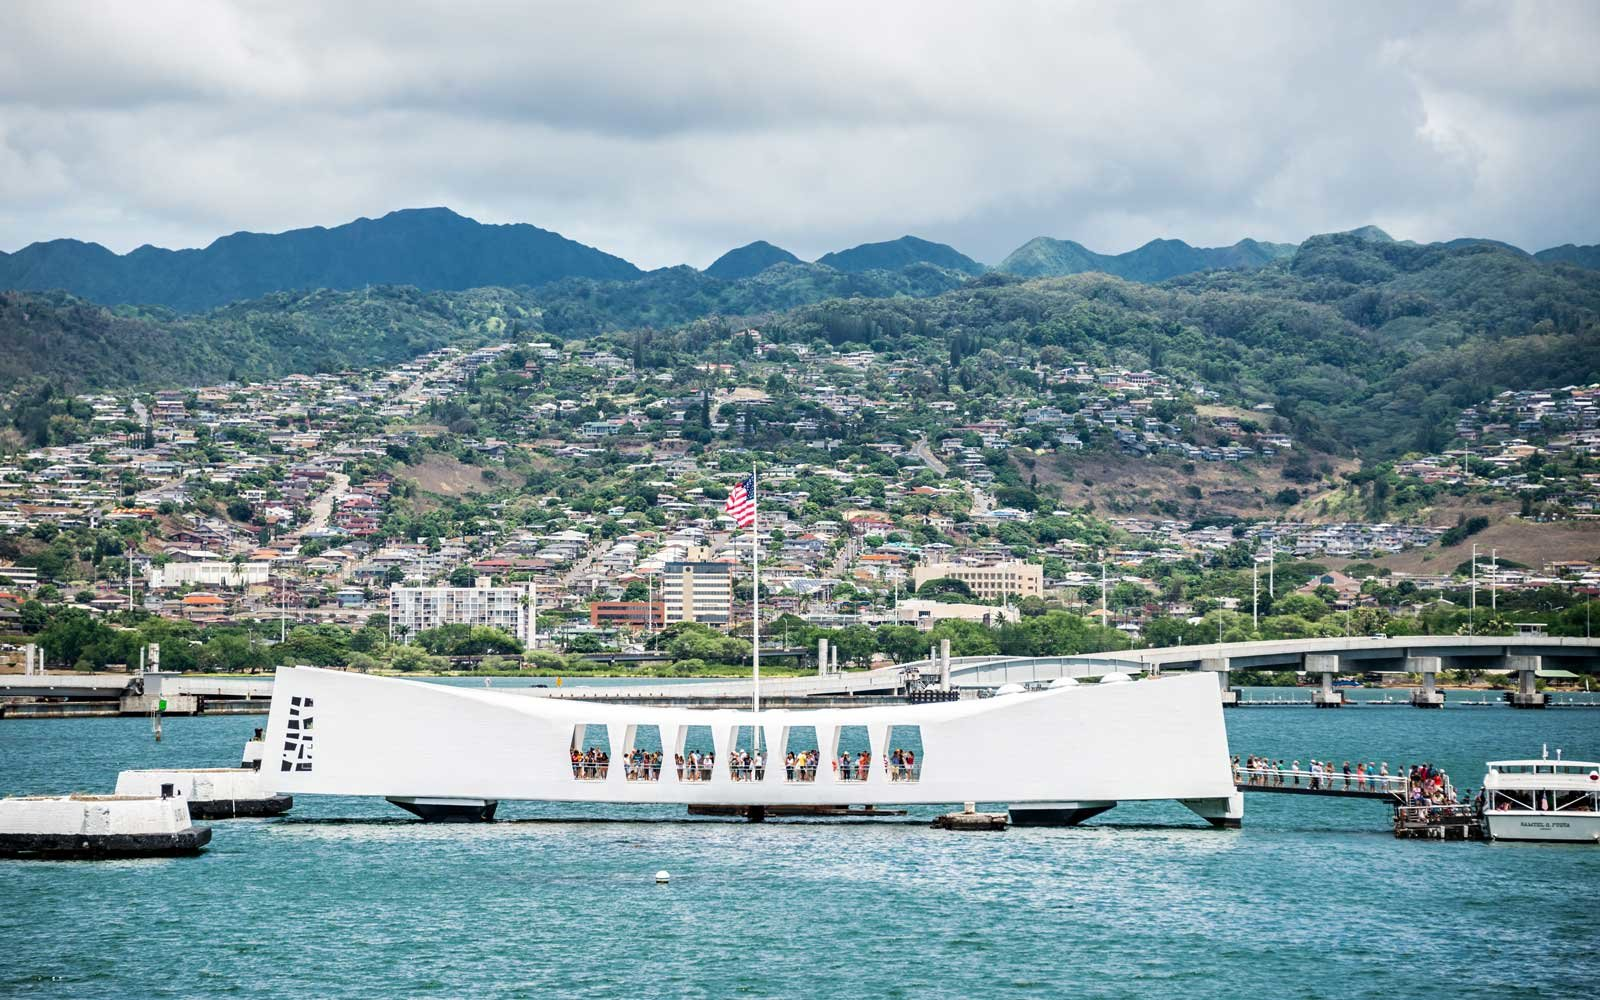 USS Arizona Memorial in Hawaii